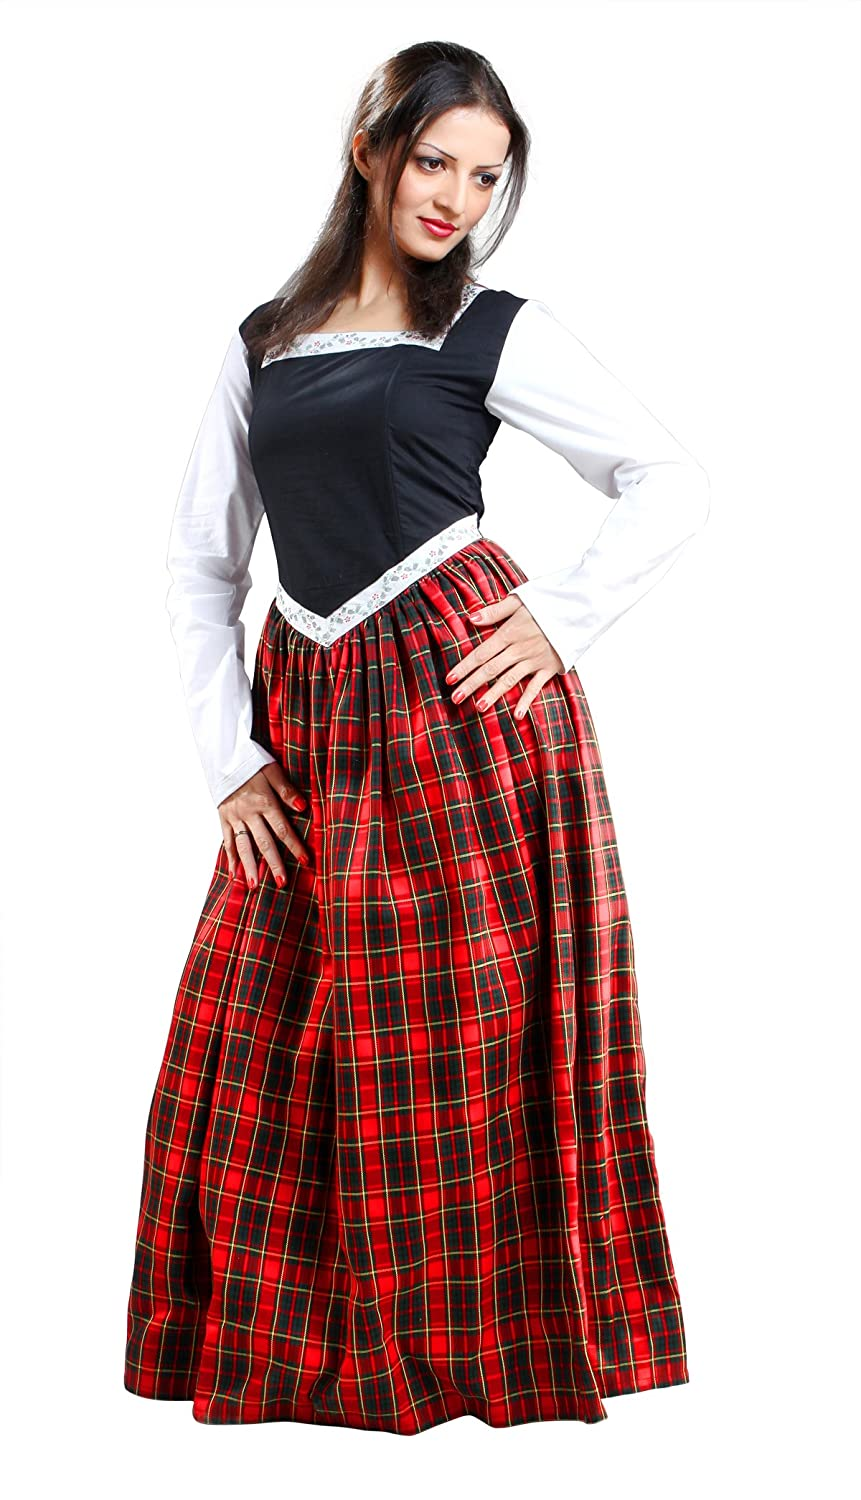 Armor Venue Women's Highland Dress - Scottish Gown Costume